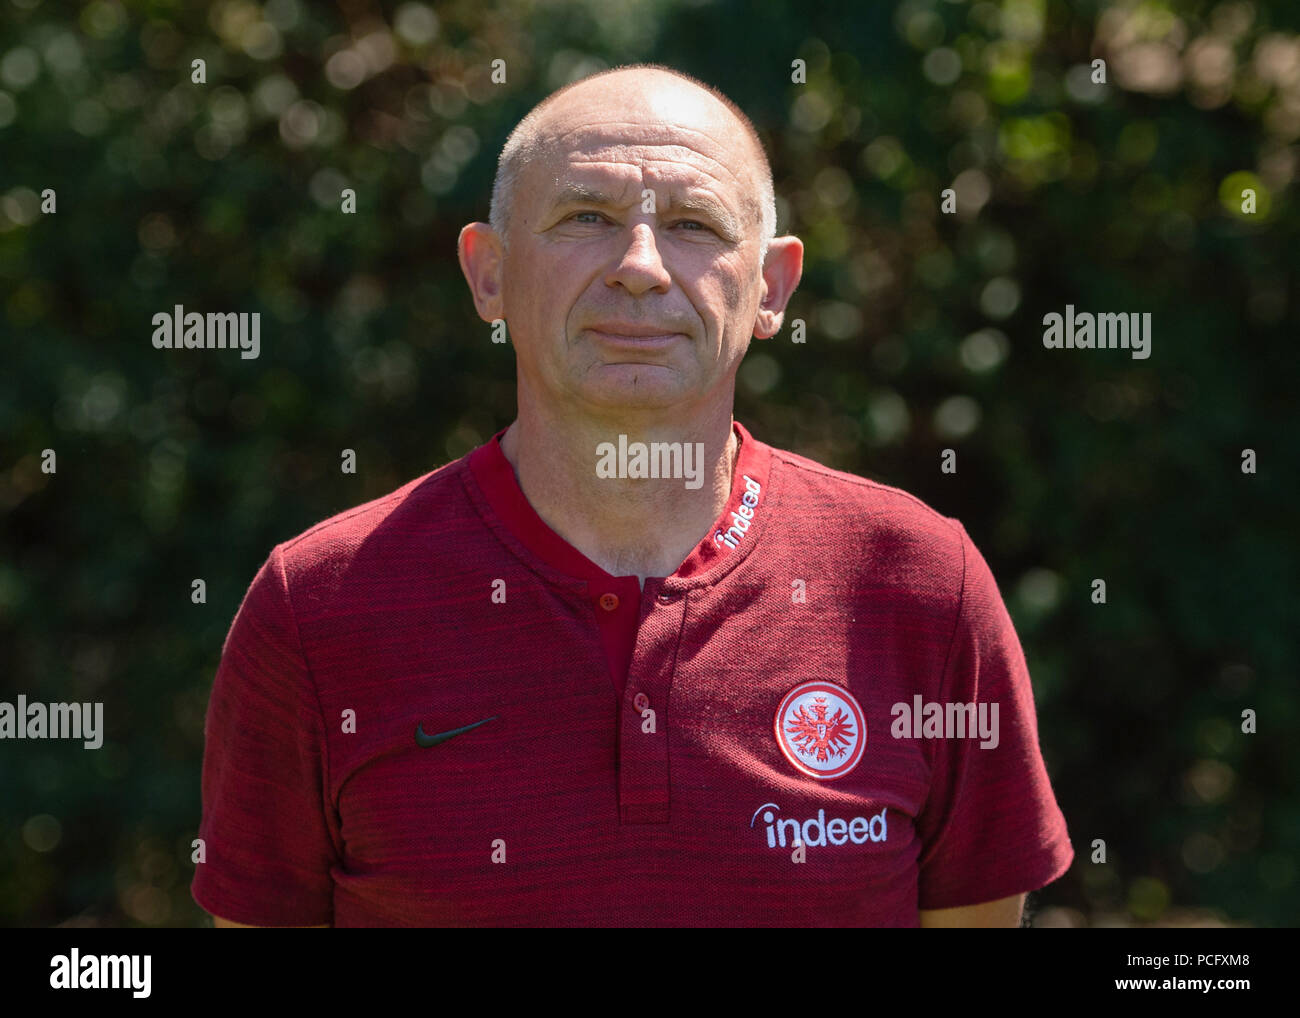 German Bundesliga, official photocall Eintracht Frankfurt for season 2018/19 in Frankfurt, Germany: kitman Igor Simonov Photo: Thorsten Wagner/dpa | usage worldwide - Stock Image